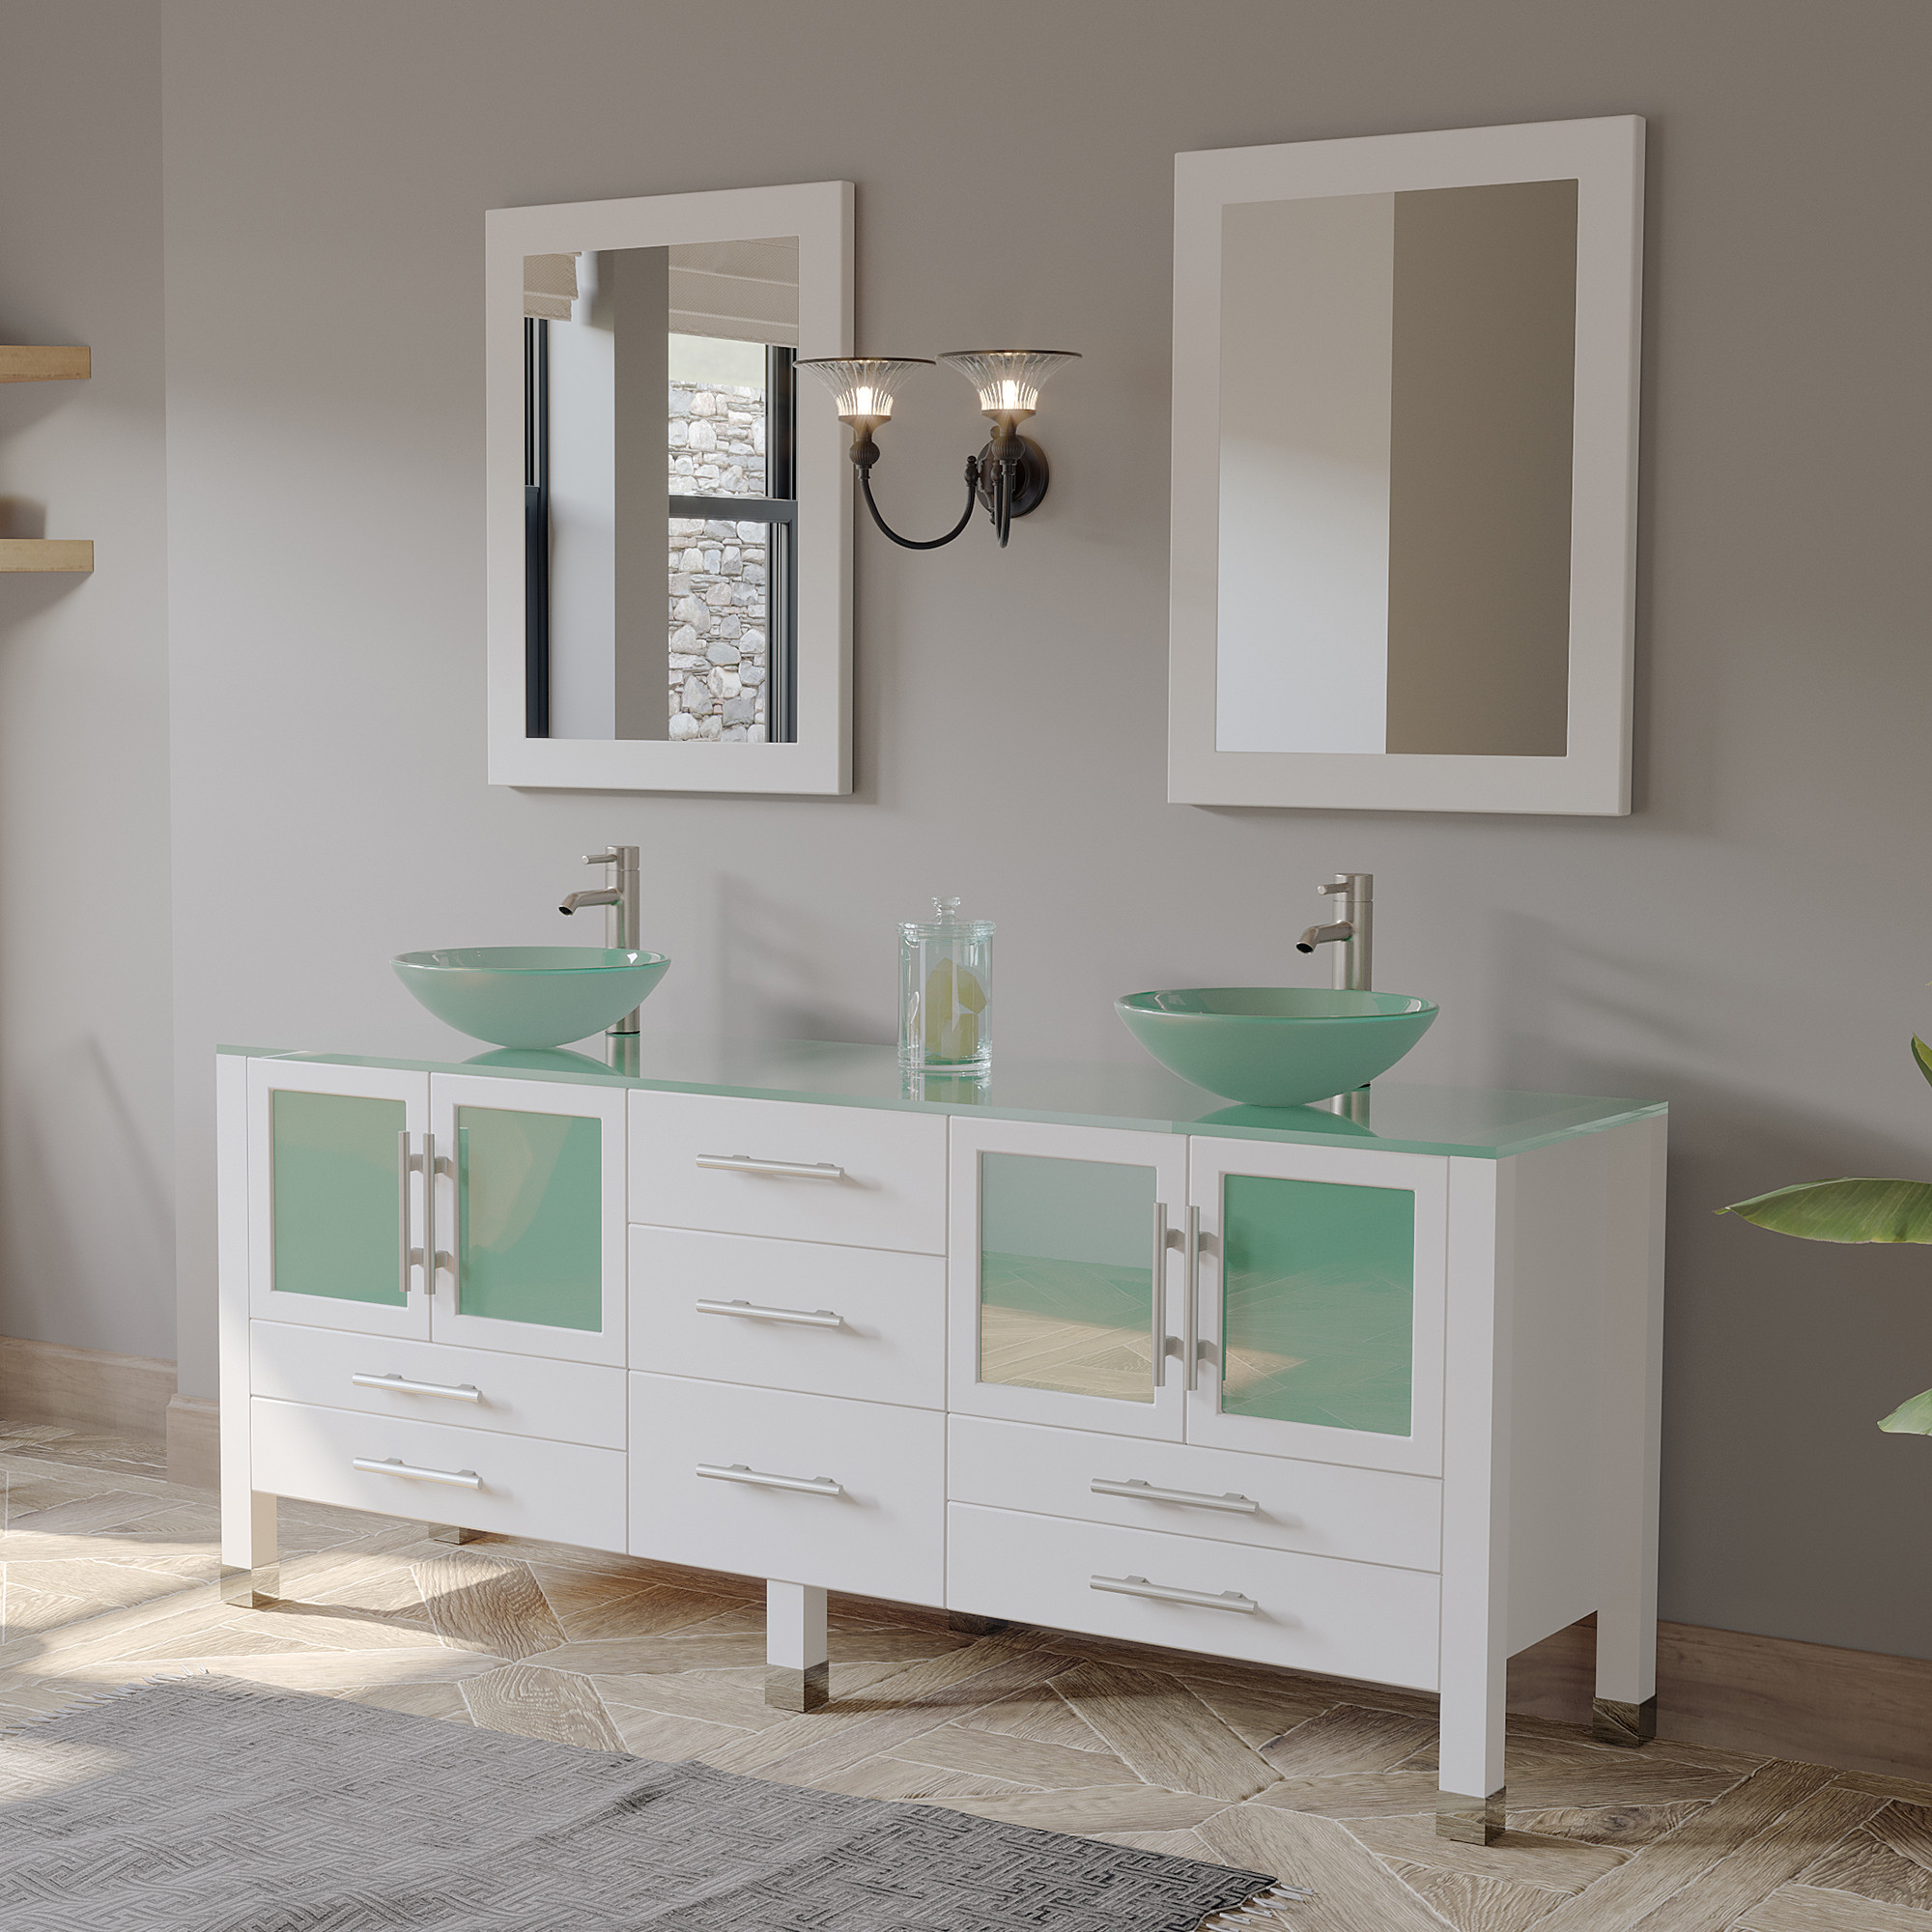 Cambridge 8119bxlw-BN 71 Inch Vanity Set with Frosted Glass Vessel Sinks